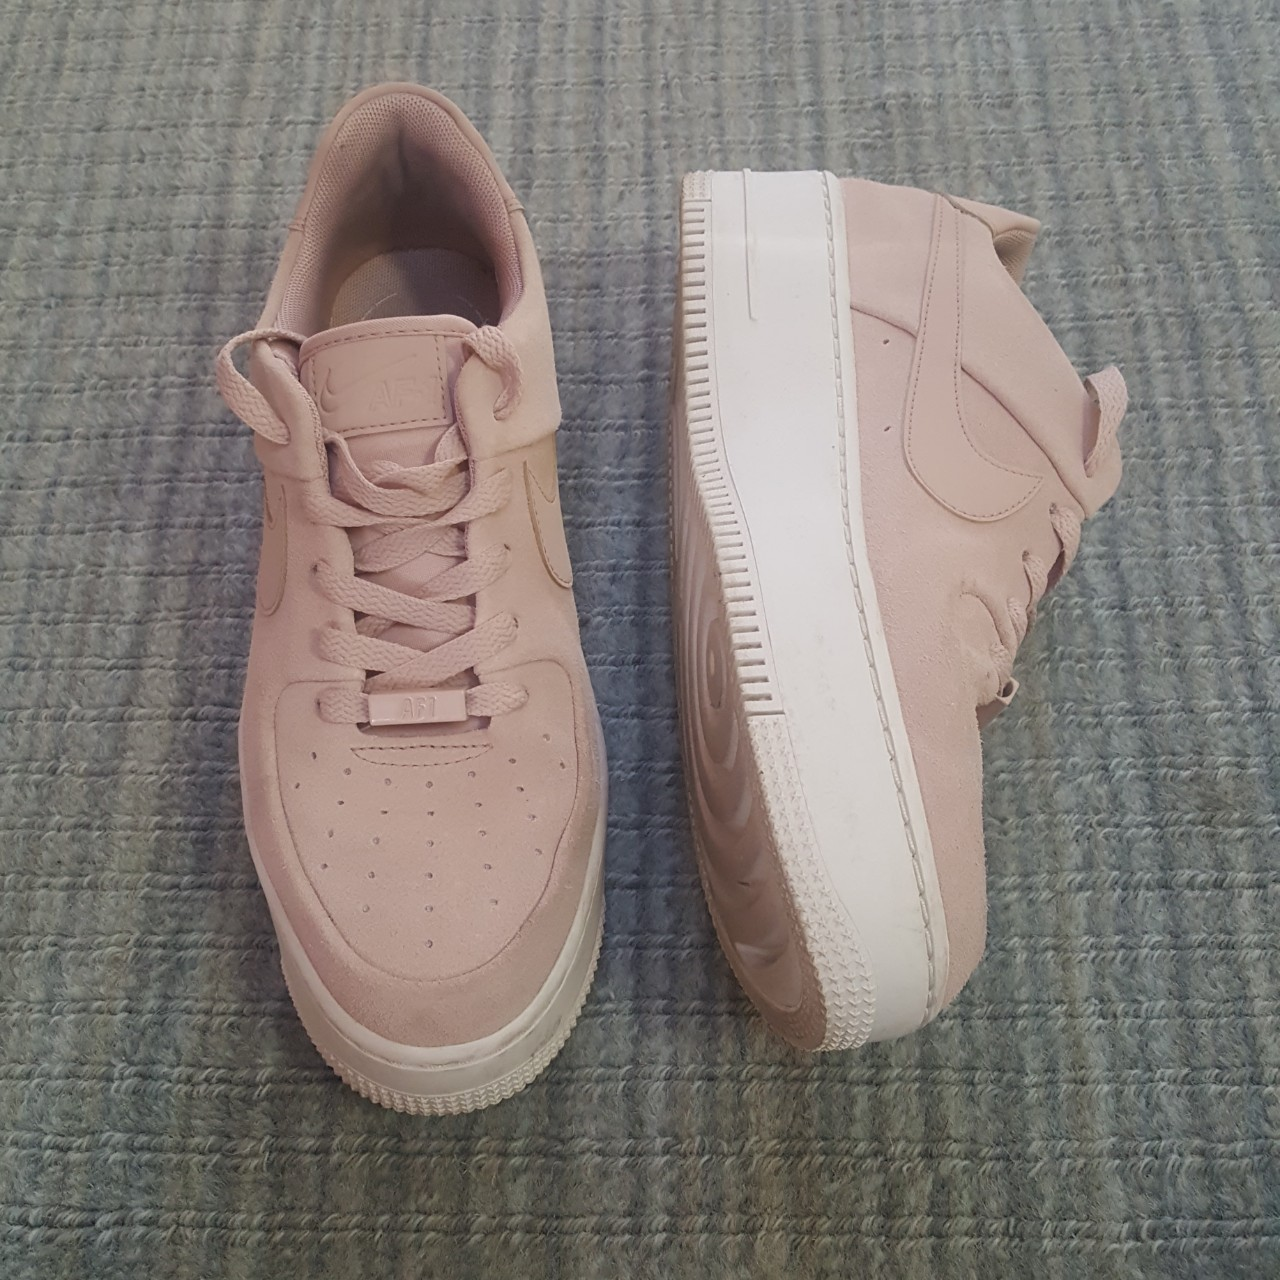 ☁ Nike Air Force 1 Saga Low in Beige ☁, Women's Fashion